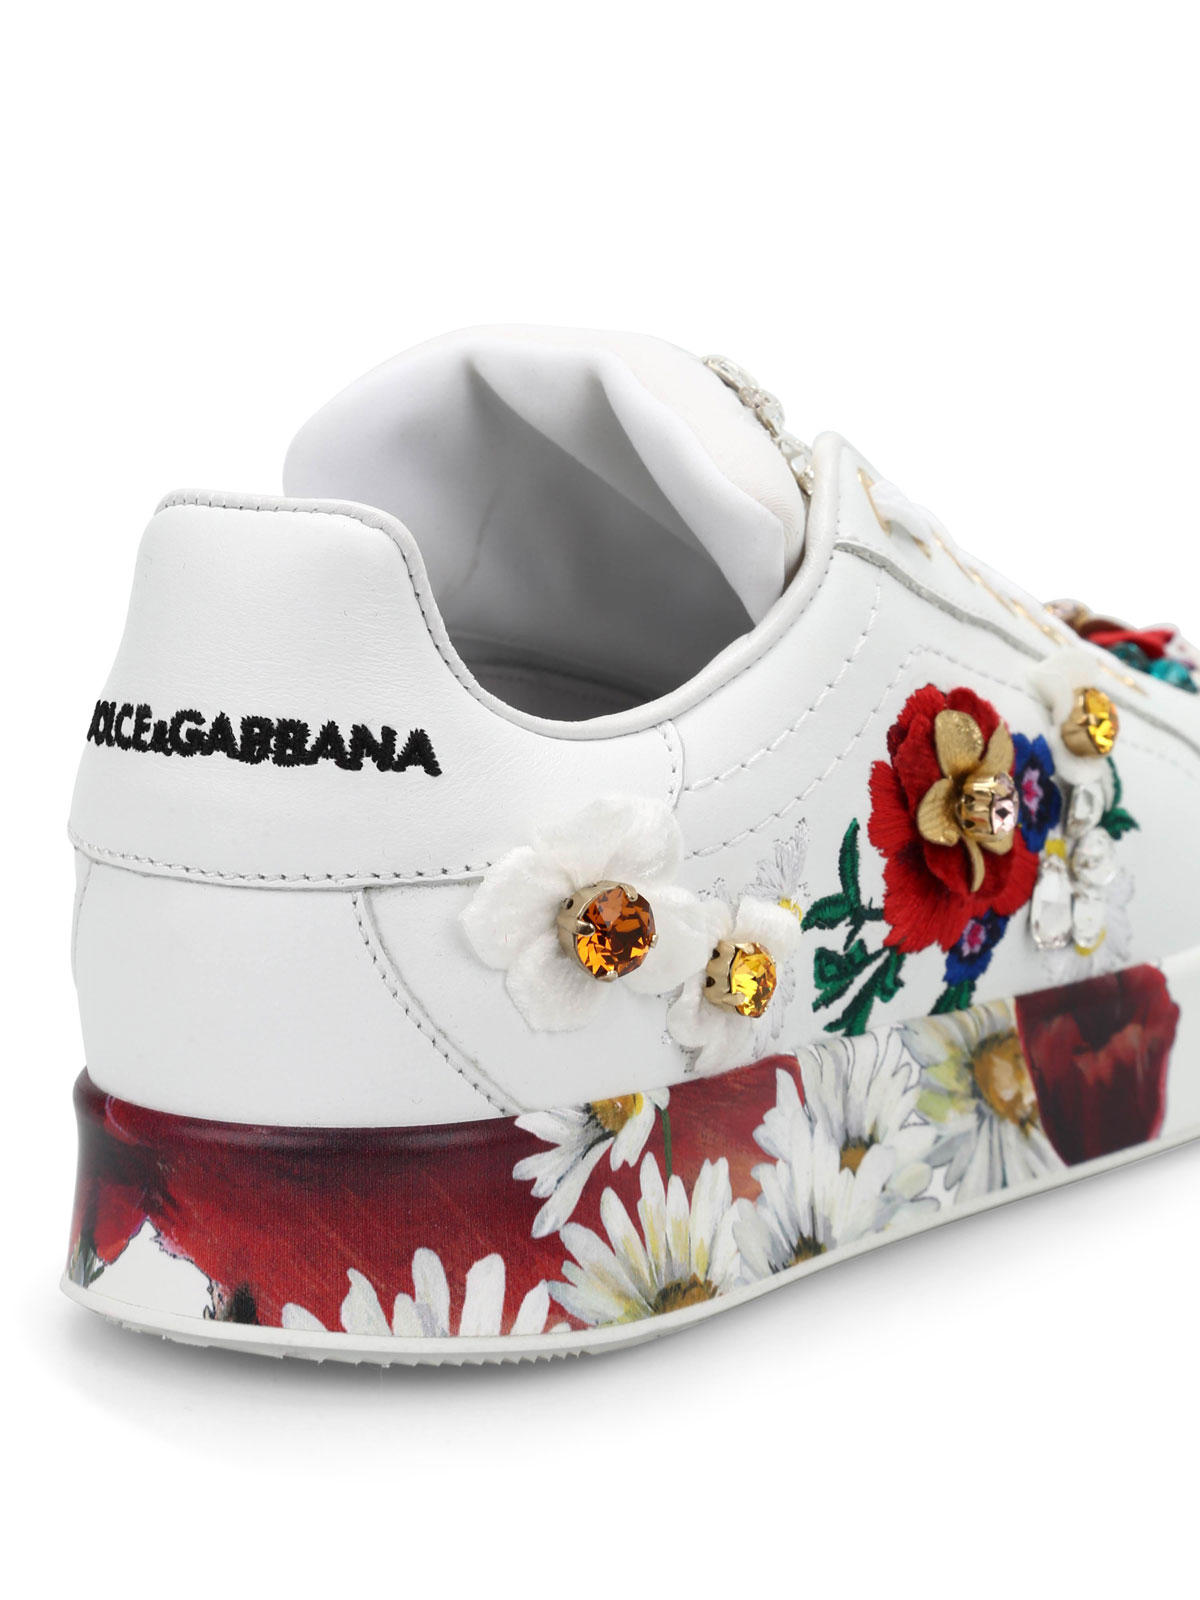 Dolce   Gabbana - Floral embroidered sneakers - trainers - CK0058 ... 4f9230aca1